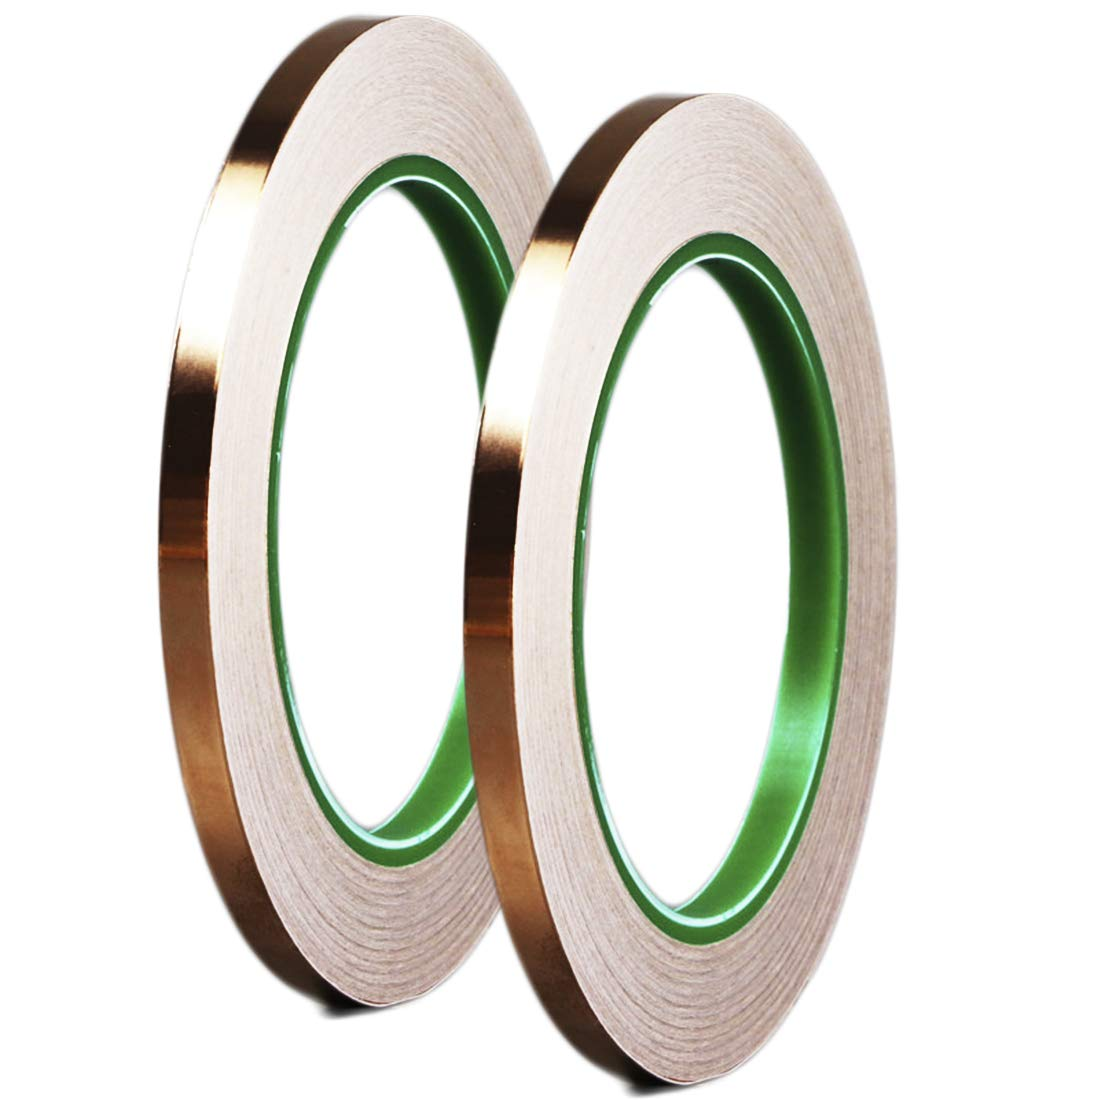 Dooppa 5mm x 50m Copper Foil Tape with Conductive Adhesive, for Art Work, Stained Glass, Electrical Repairs, Soldering, EMI Shielding, Grounding (2 Pack)